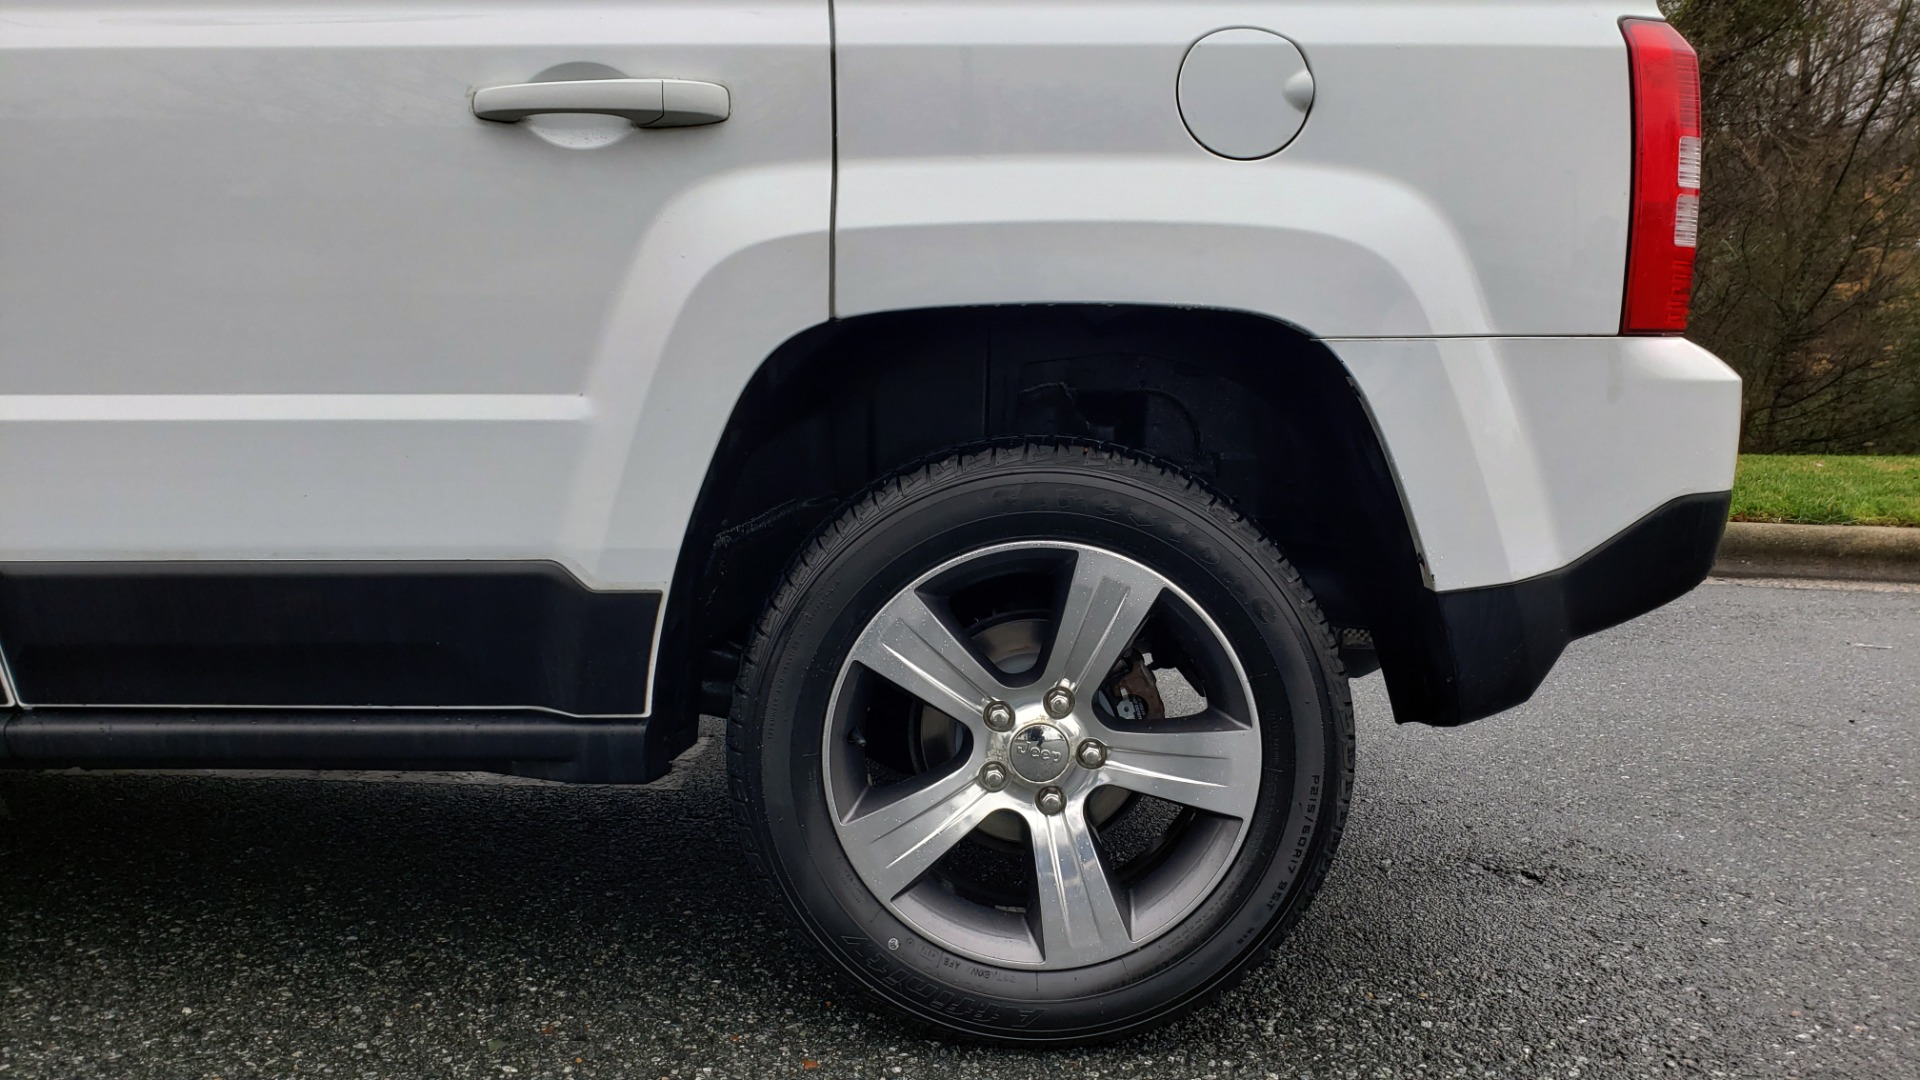 Used 2016 Jeep PATRIOT HIGH ALTITUDE EDITION 4WD / SUNROOF / 4-CYL / 6-SPD AUTO for sale $14,695 at Formula Imports in Charlotte NC 28227 54